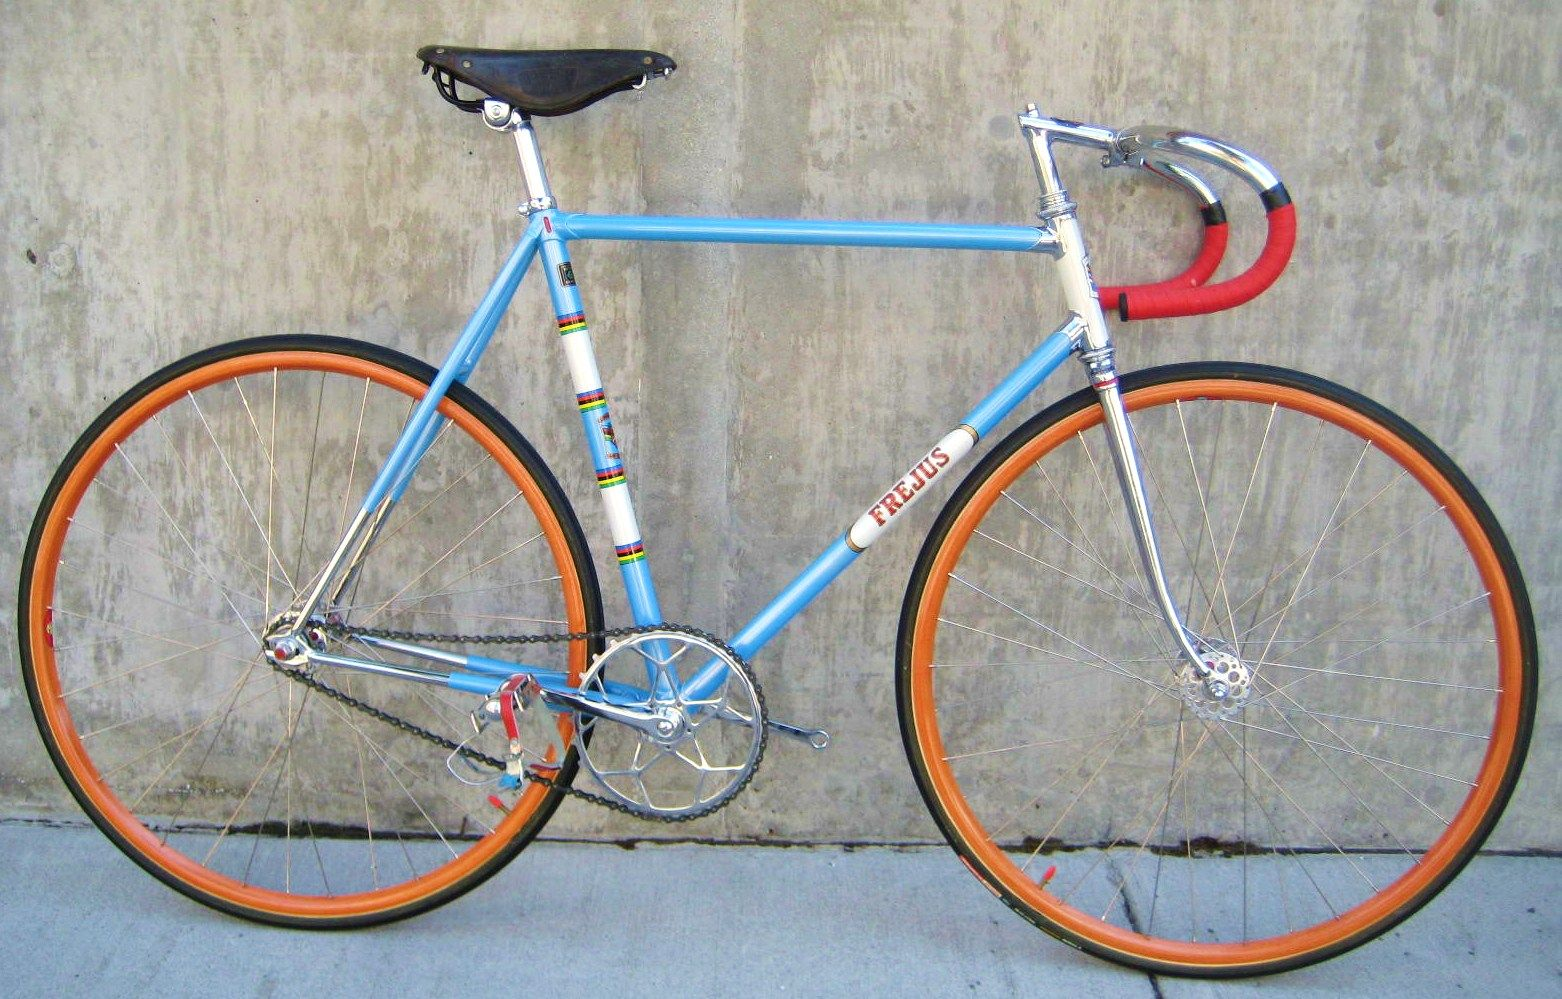 The Colors In This Bike Are Amazing The Paint Job Is Beautiful The Wheels Have A Fun Orange Pop If Anything Bicycle Paint Job Track Bike Bicycle Track